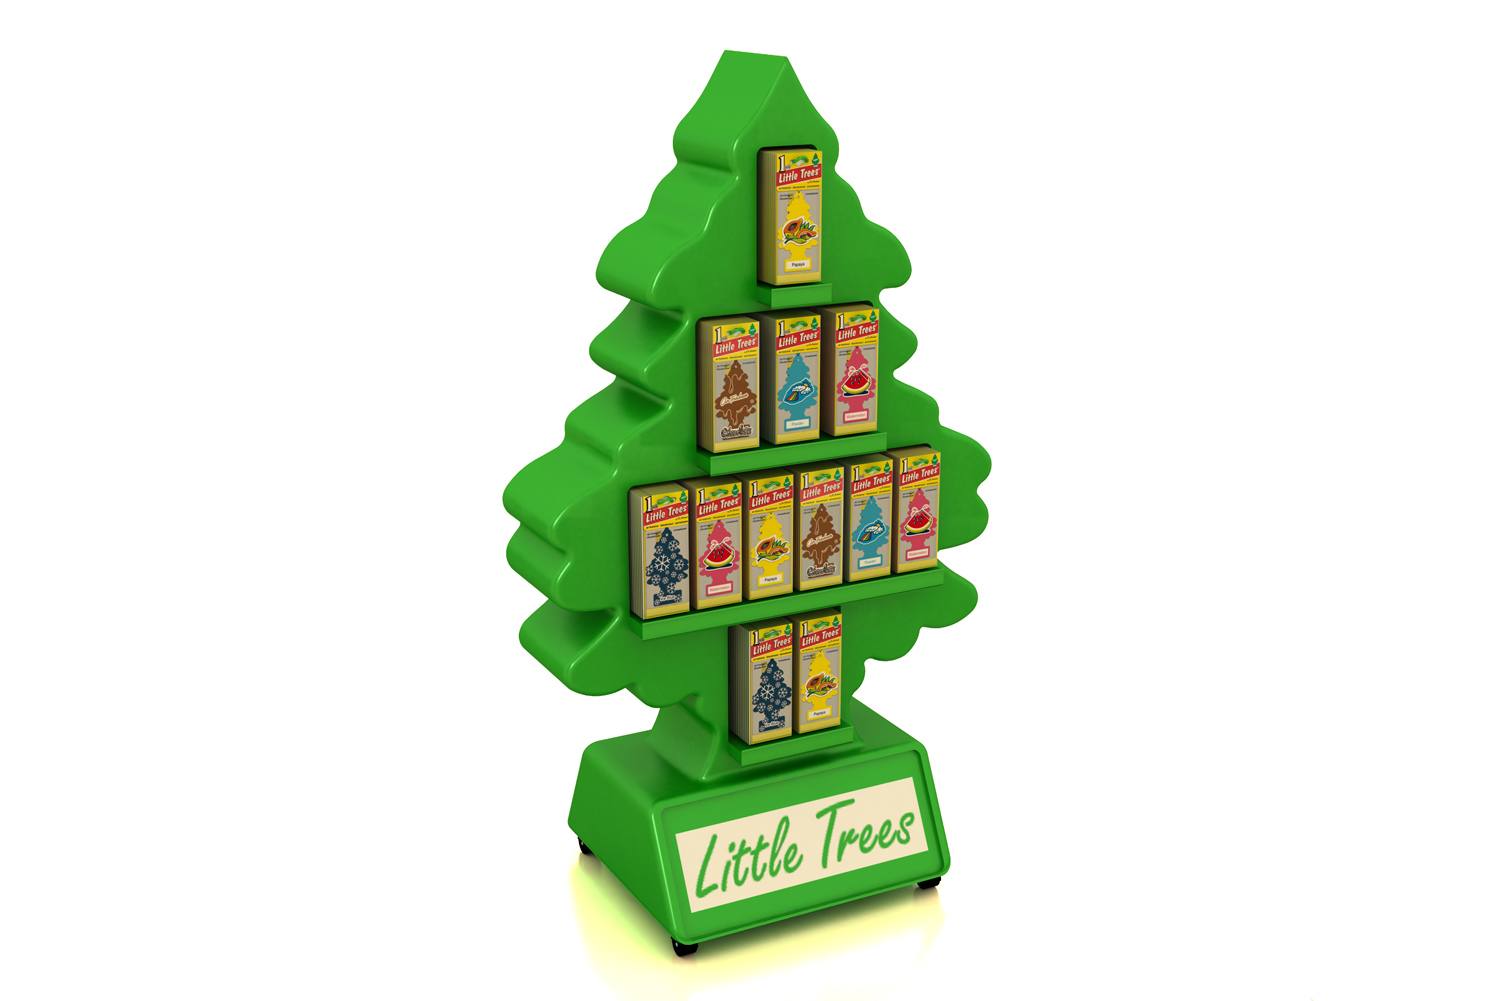 Custom Plastic Point of Purchase Displays for Little Trees